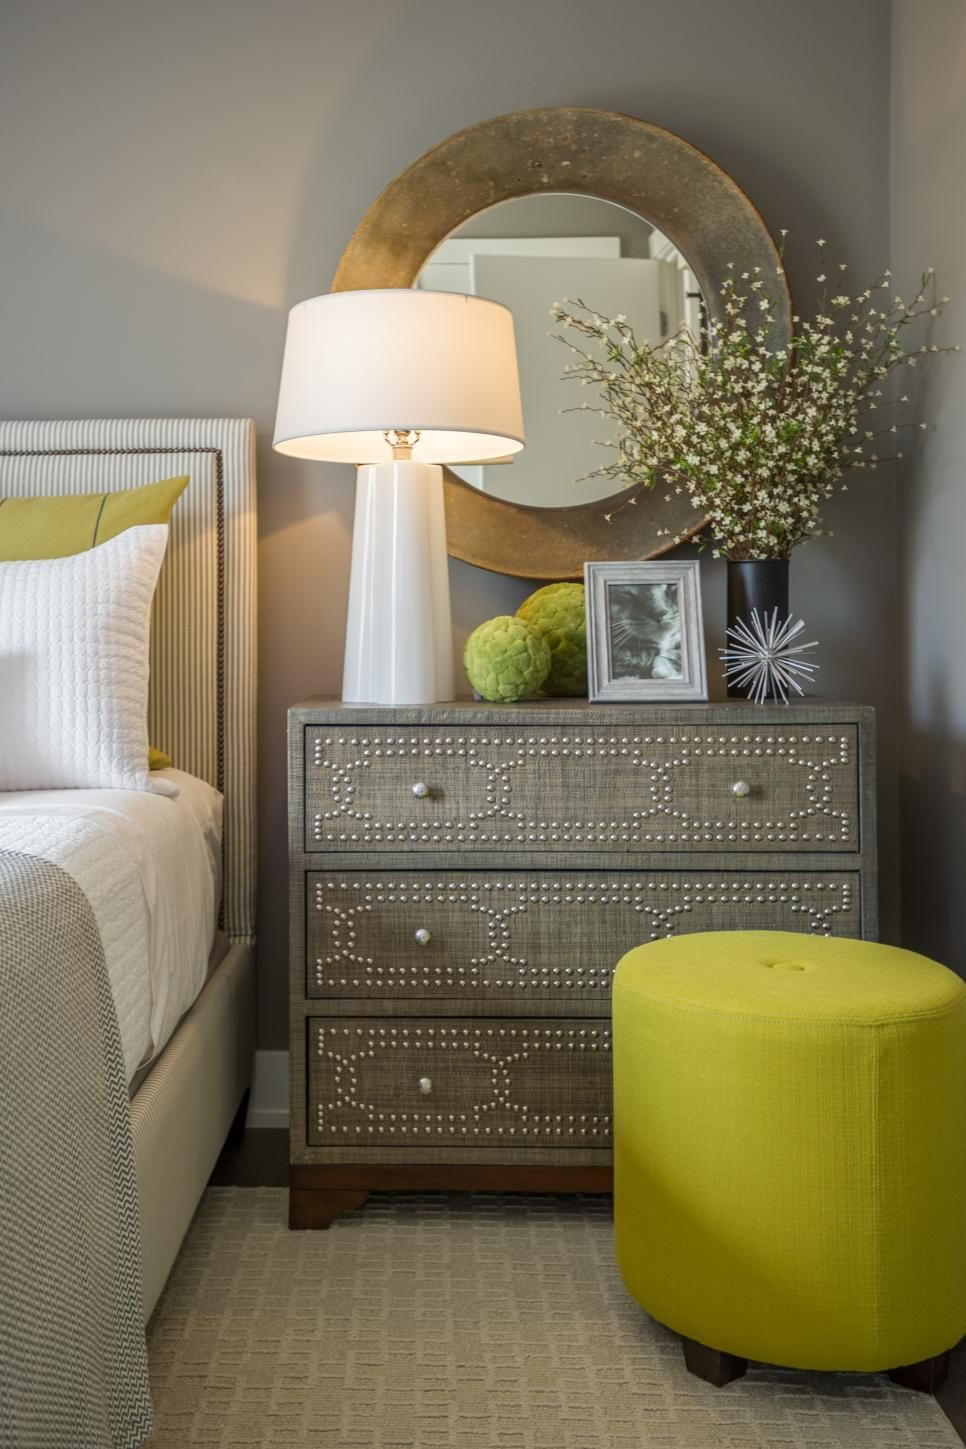 Guest Bedroom Pictures From HGTV Smart Home 2015 | Home ...